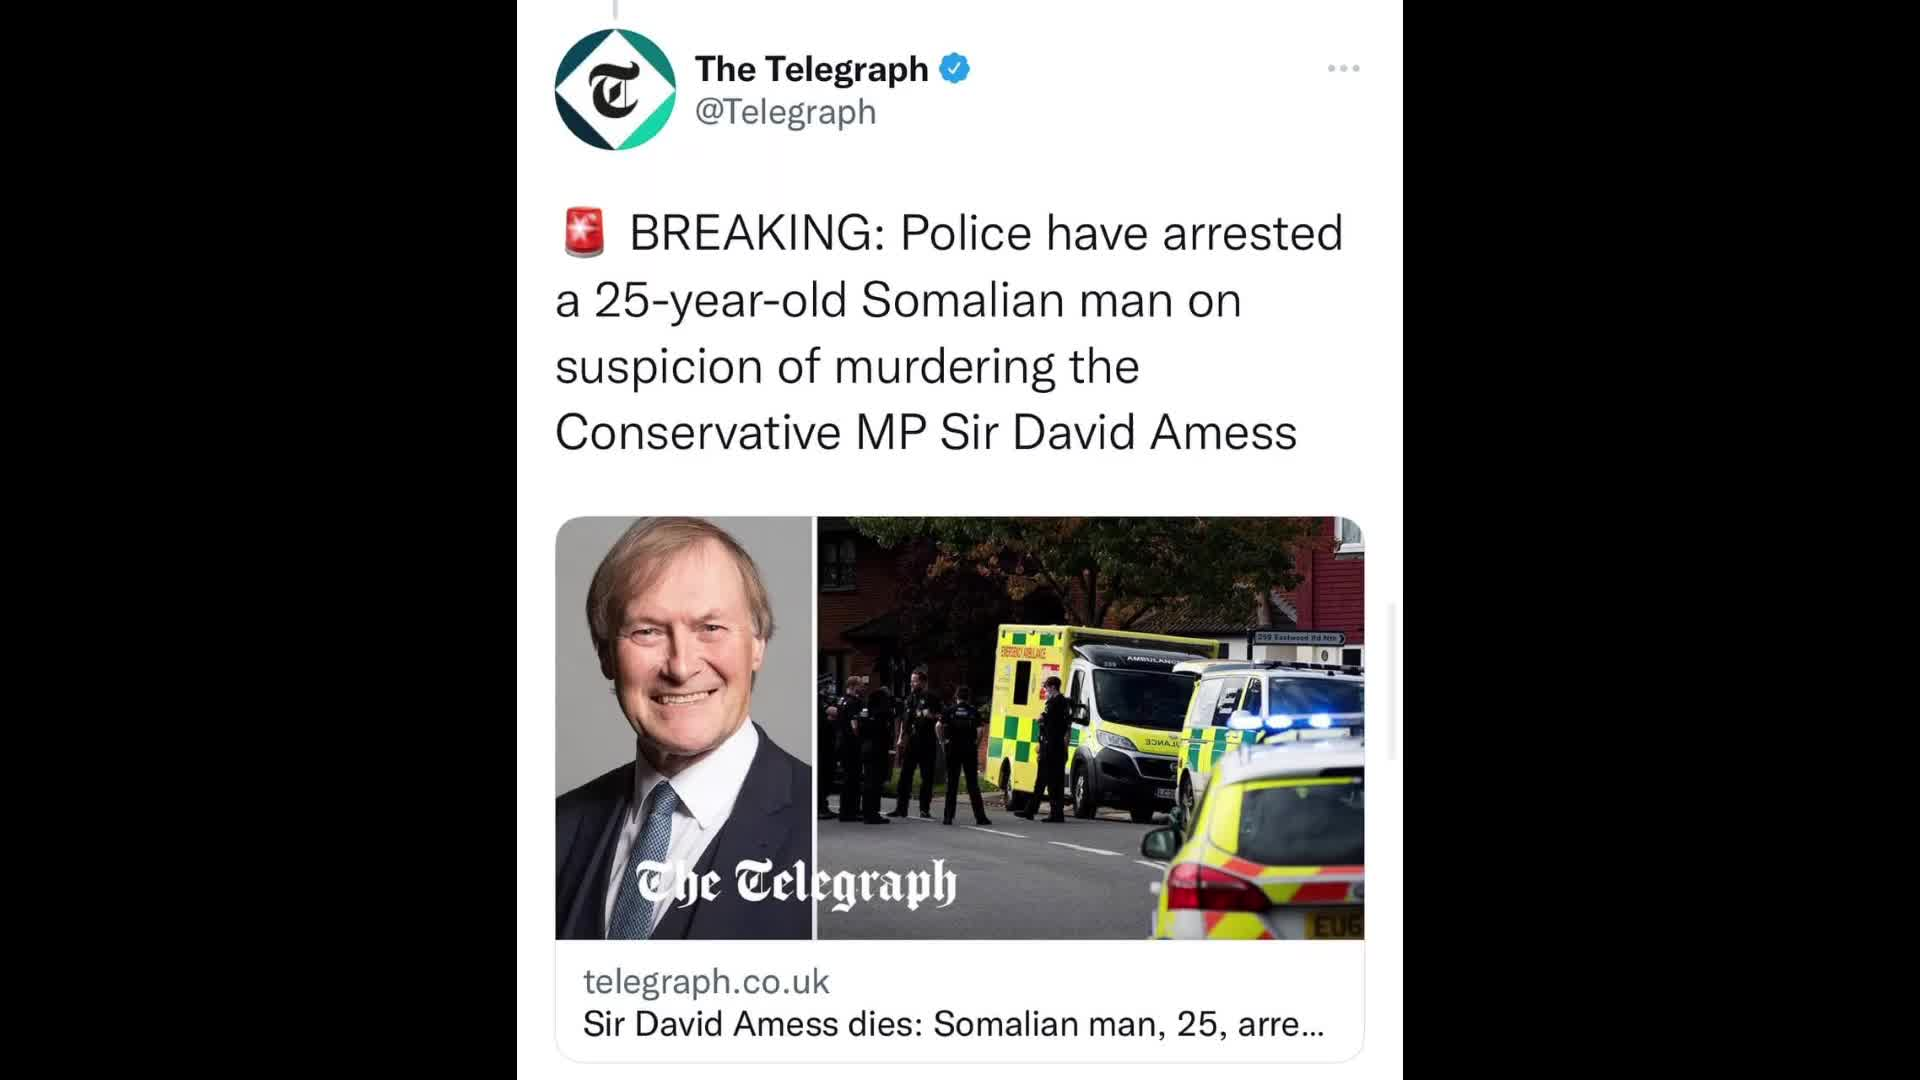 Police have announced the arrest of a 25 year old Somalian man on suspicion of murdering Conservative MP Sir David Amess